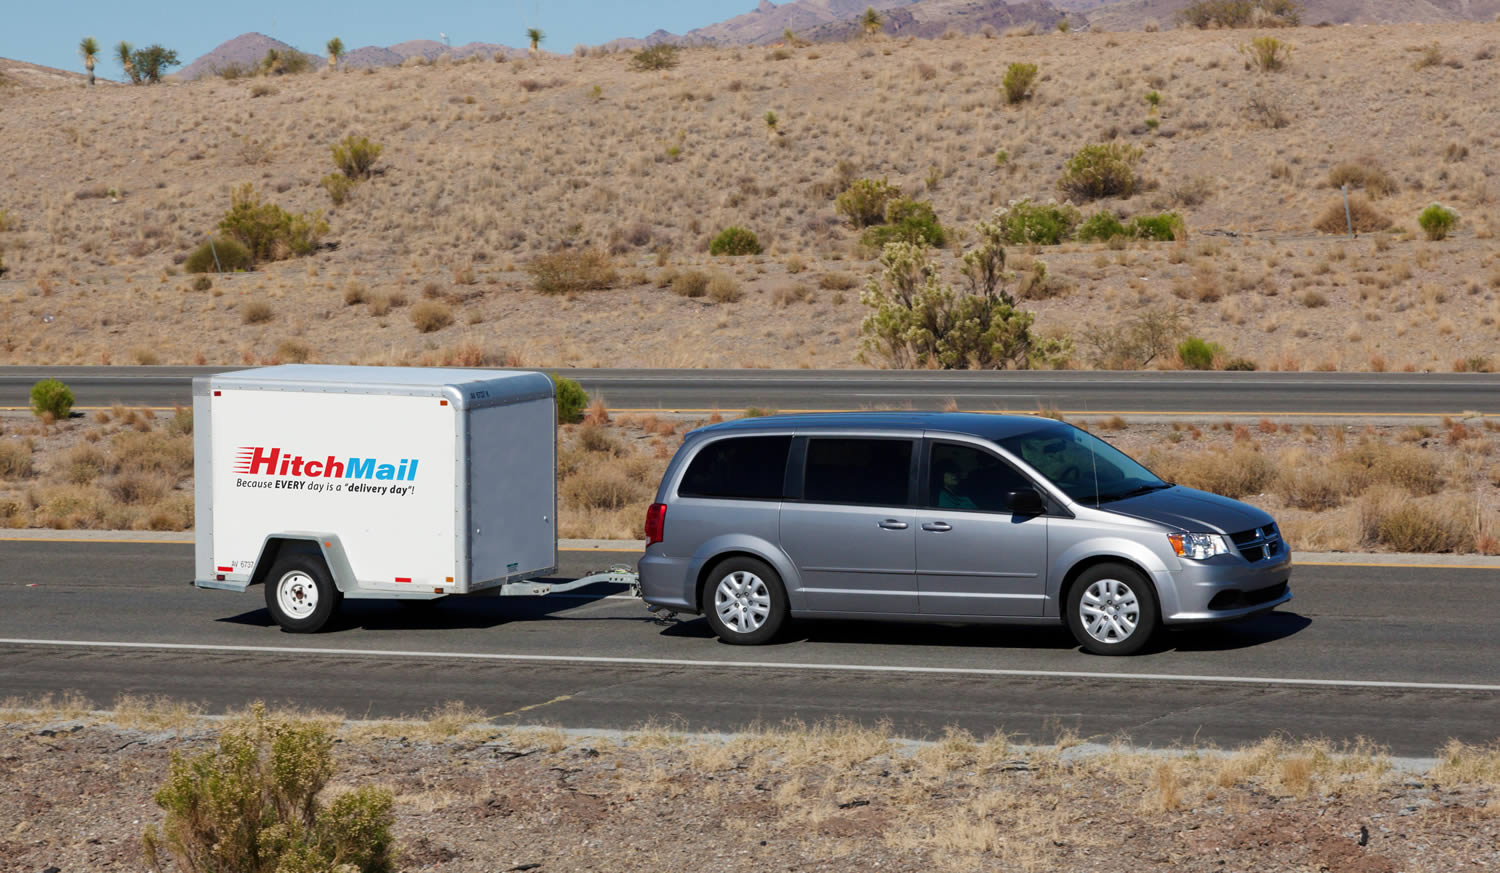 Hitchmail Trailer